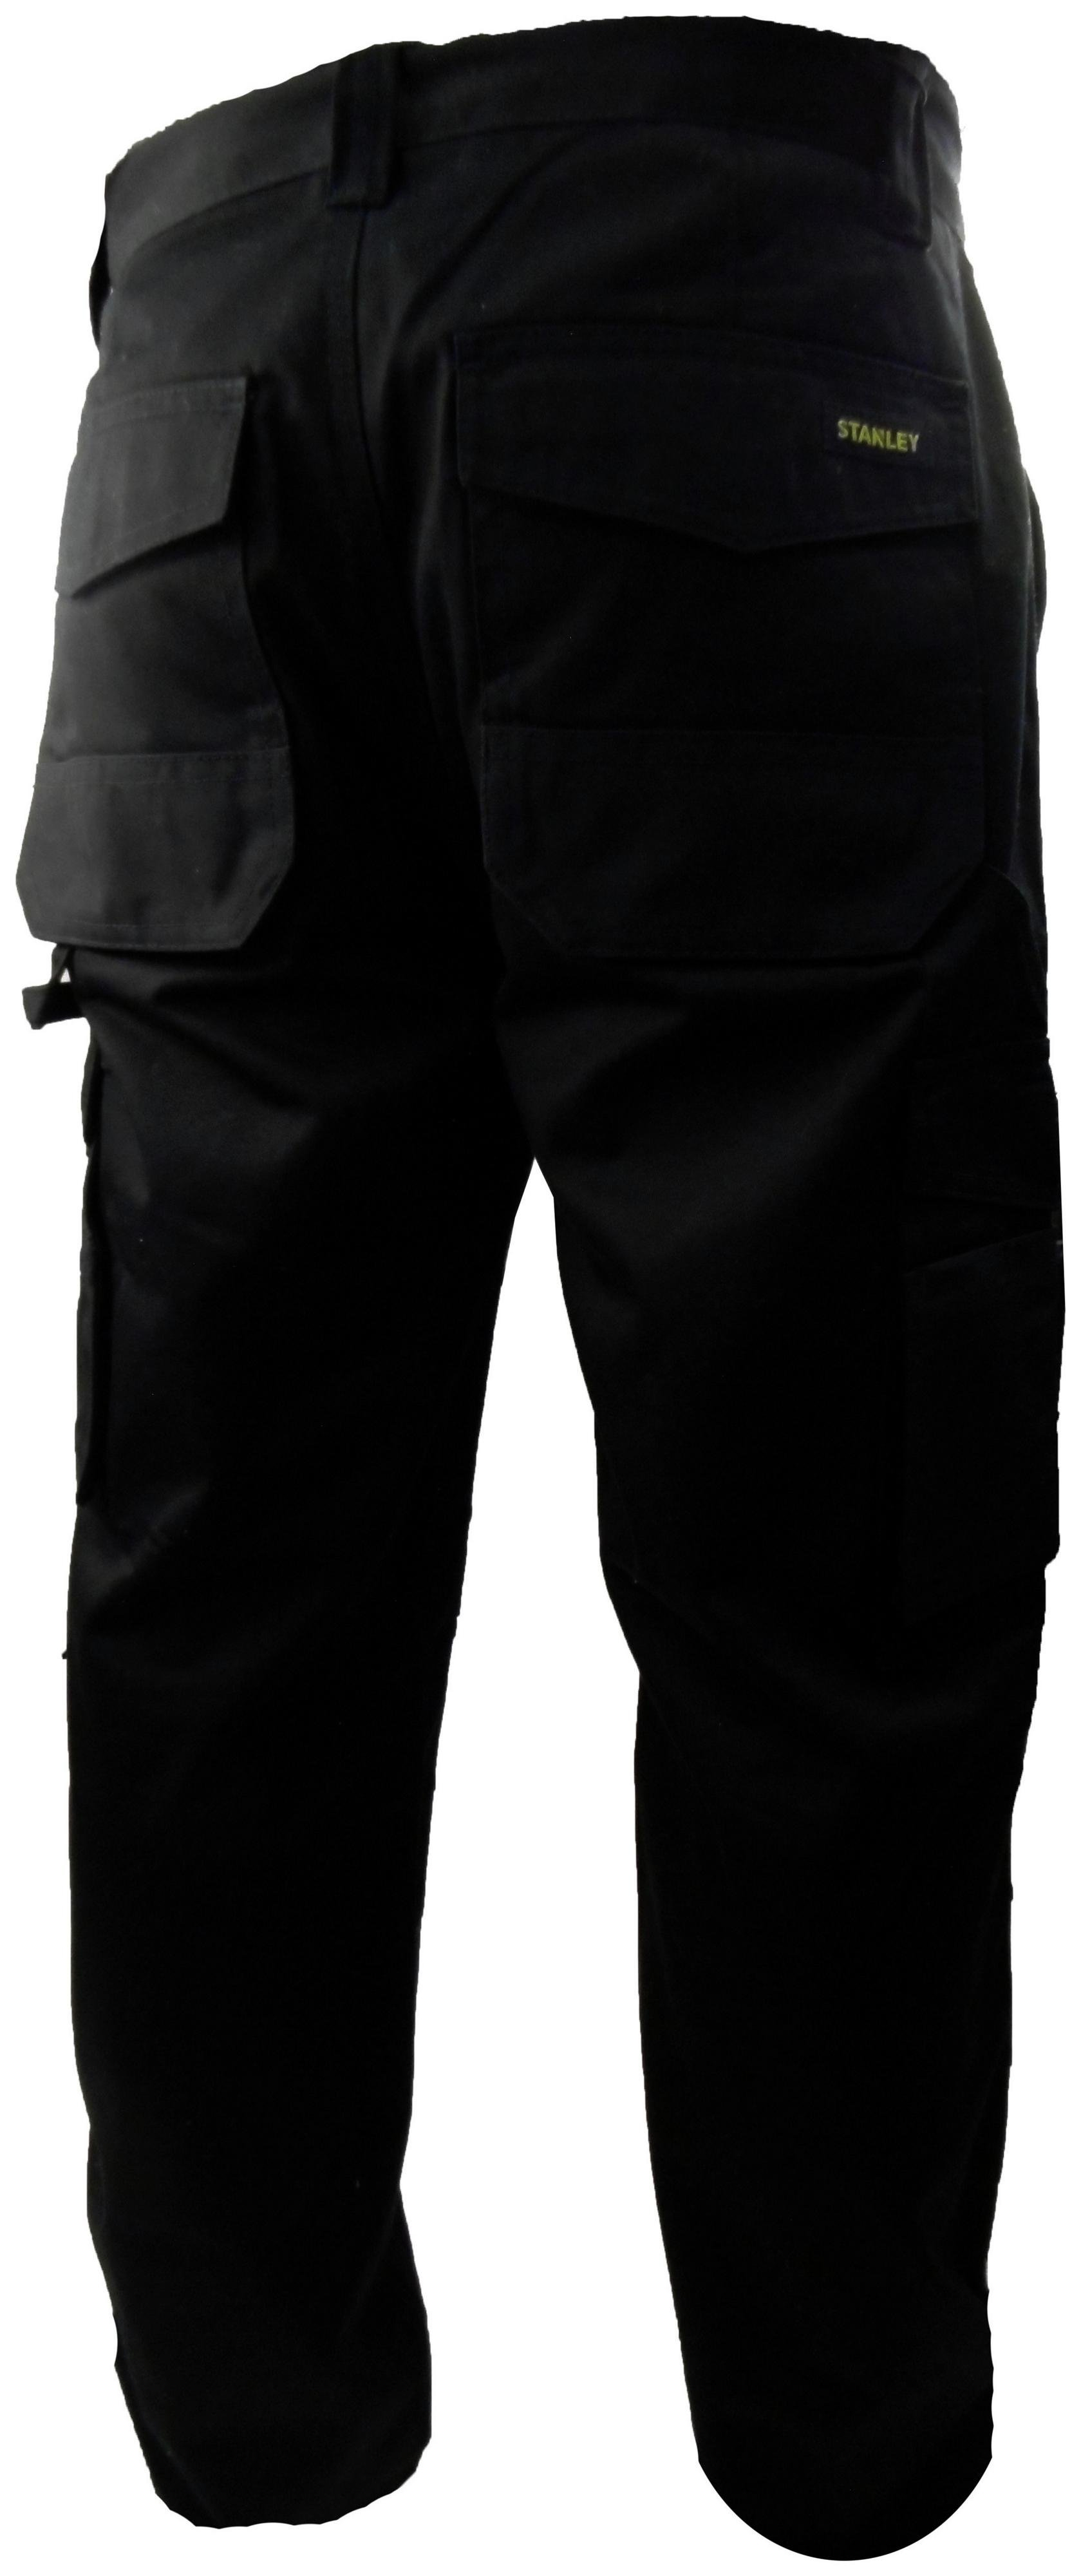 Image of Stanley - Phoenix - Mens - Black Trouser - 31 to 38 inch